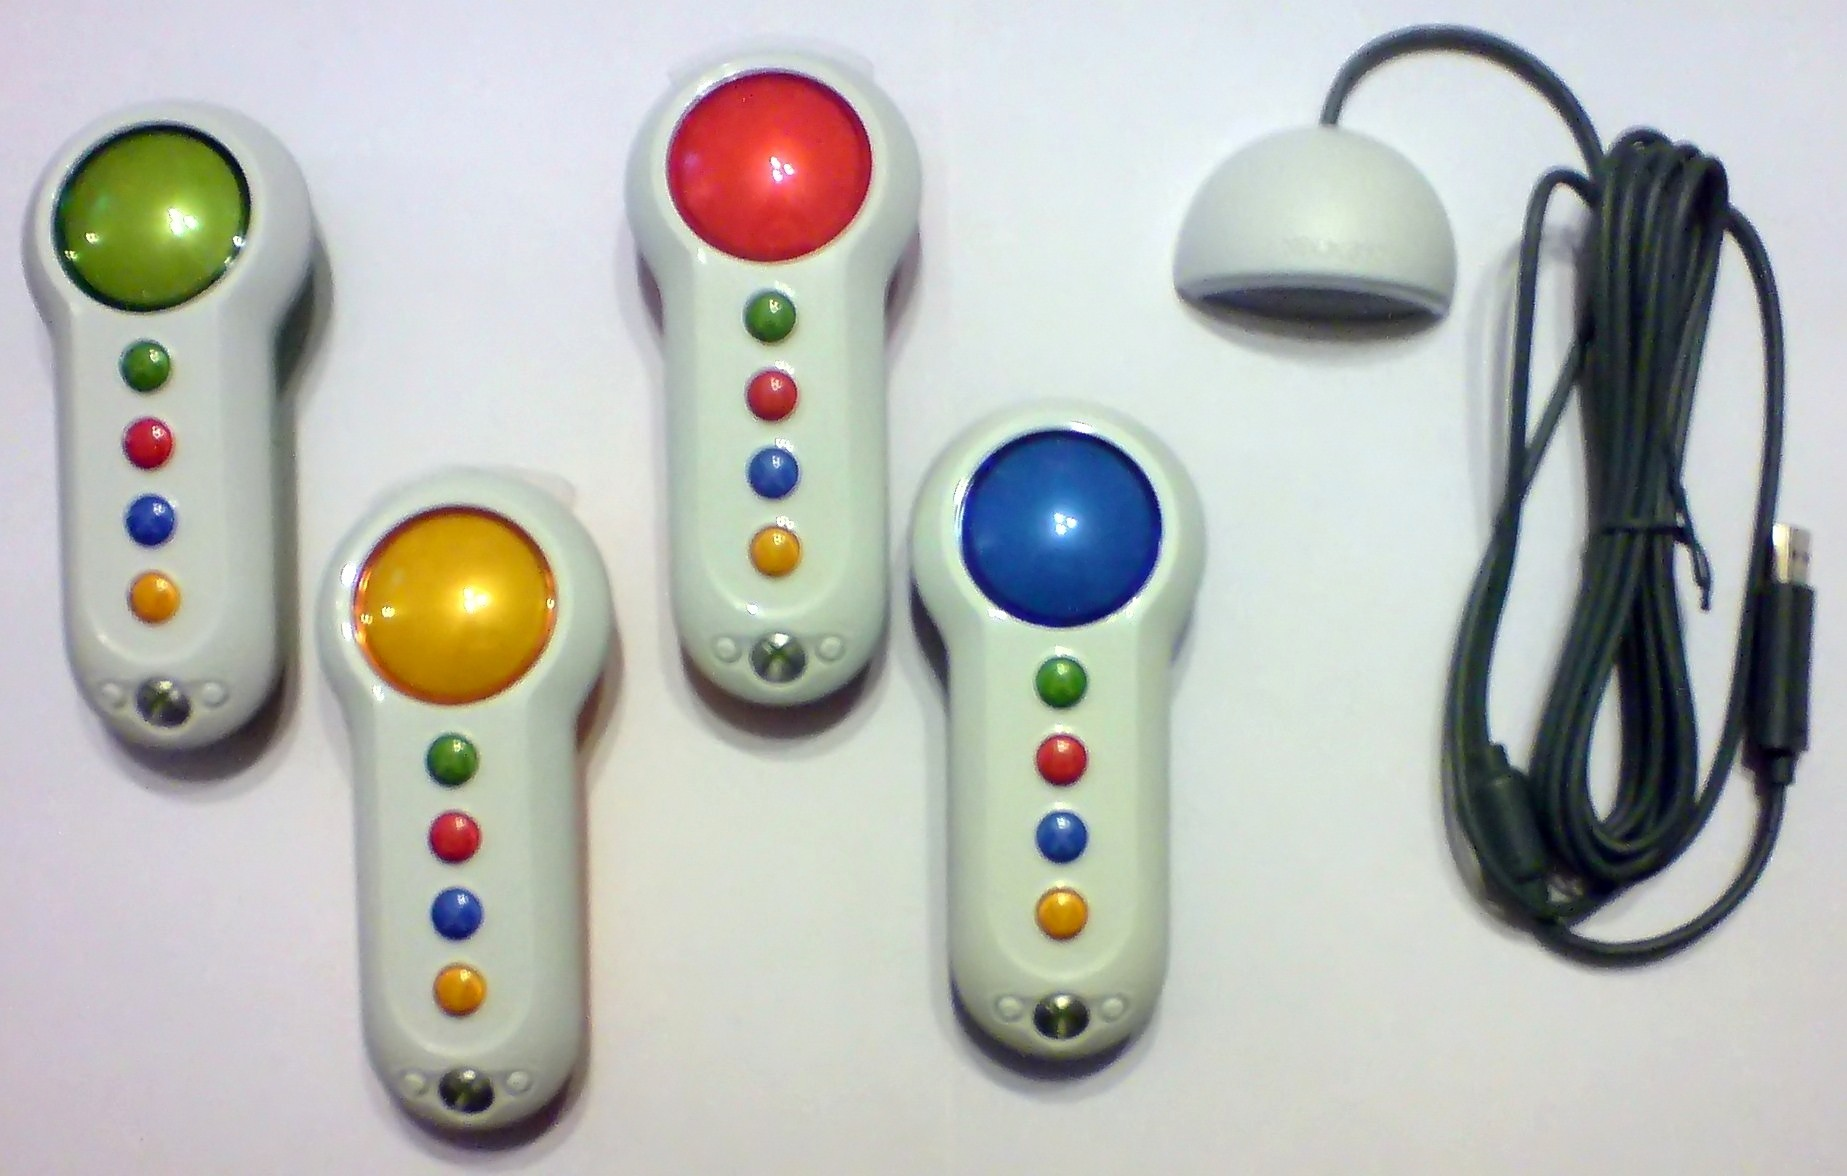 List of Xbox 360 accessories - Wikiwand